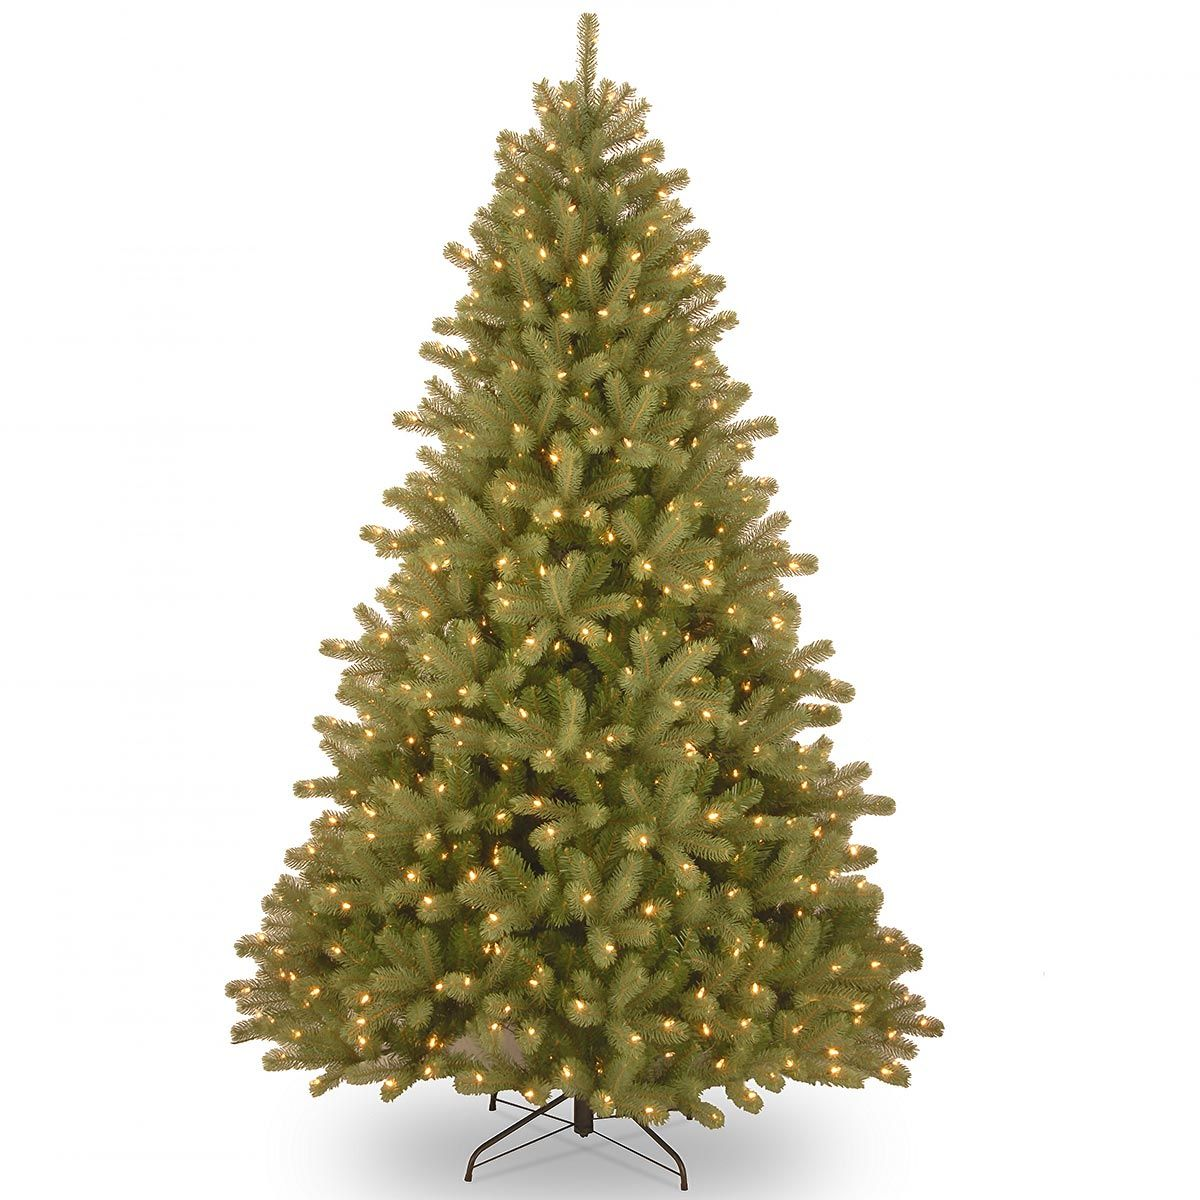 Real Christmas Trees Lowes: 6.5ft Pre-lit Lakewood Spruce Feel-Real Artificial